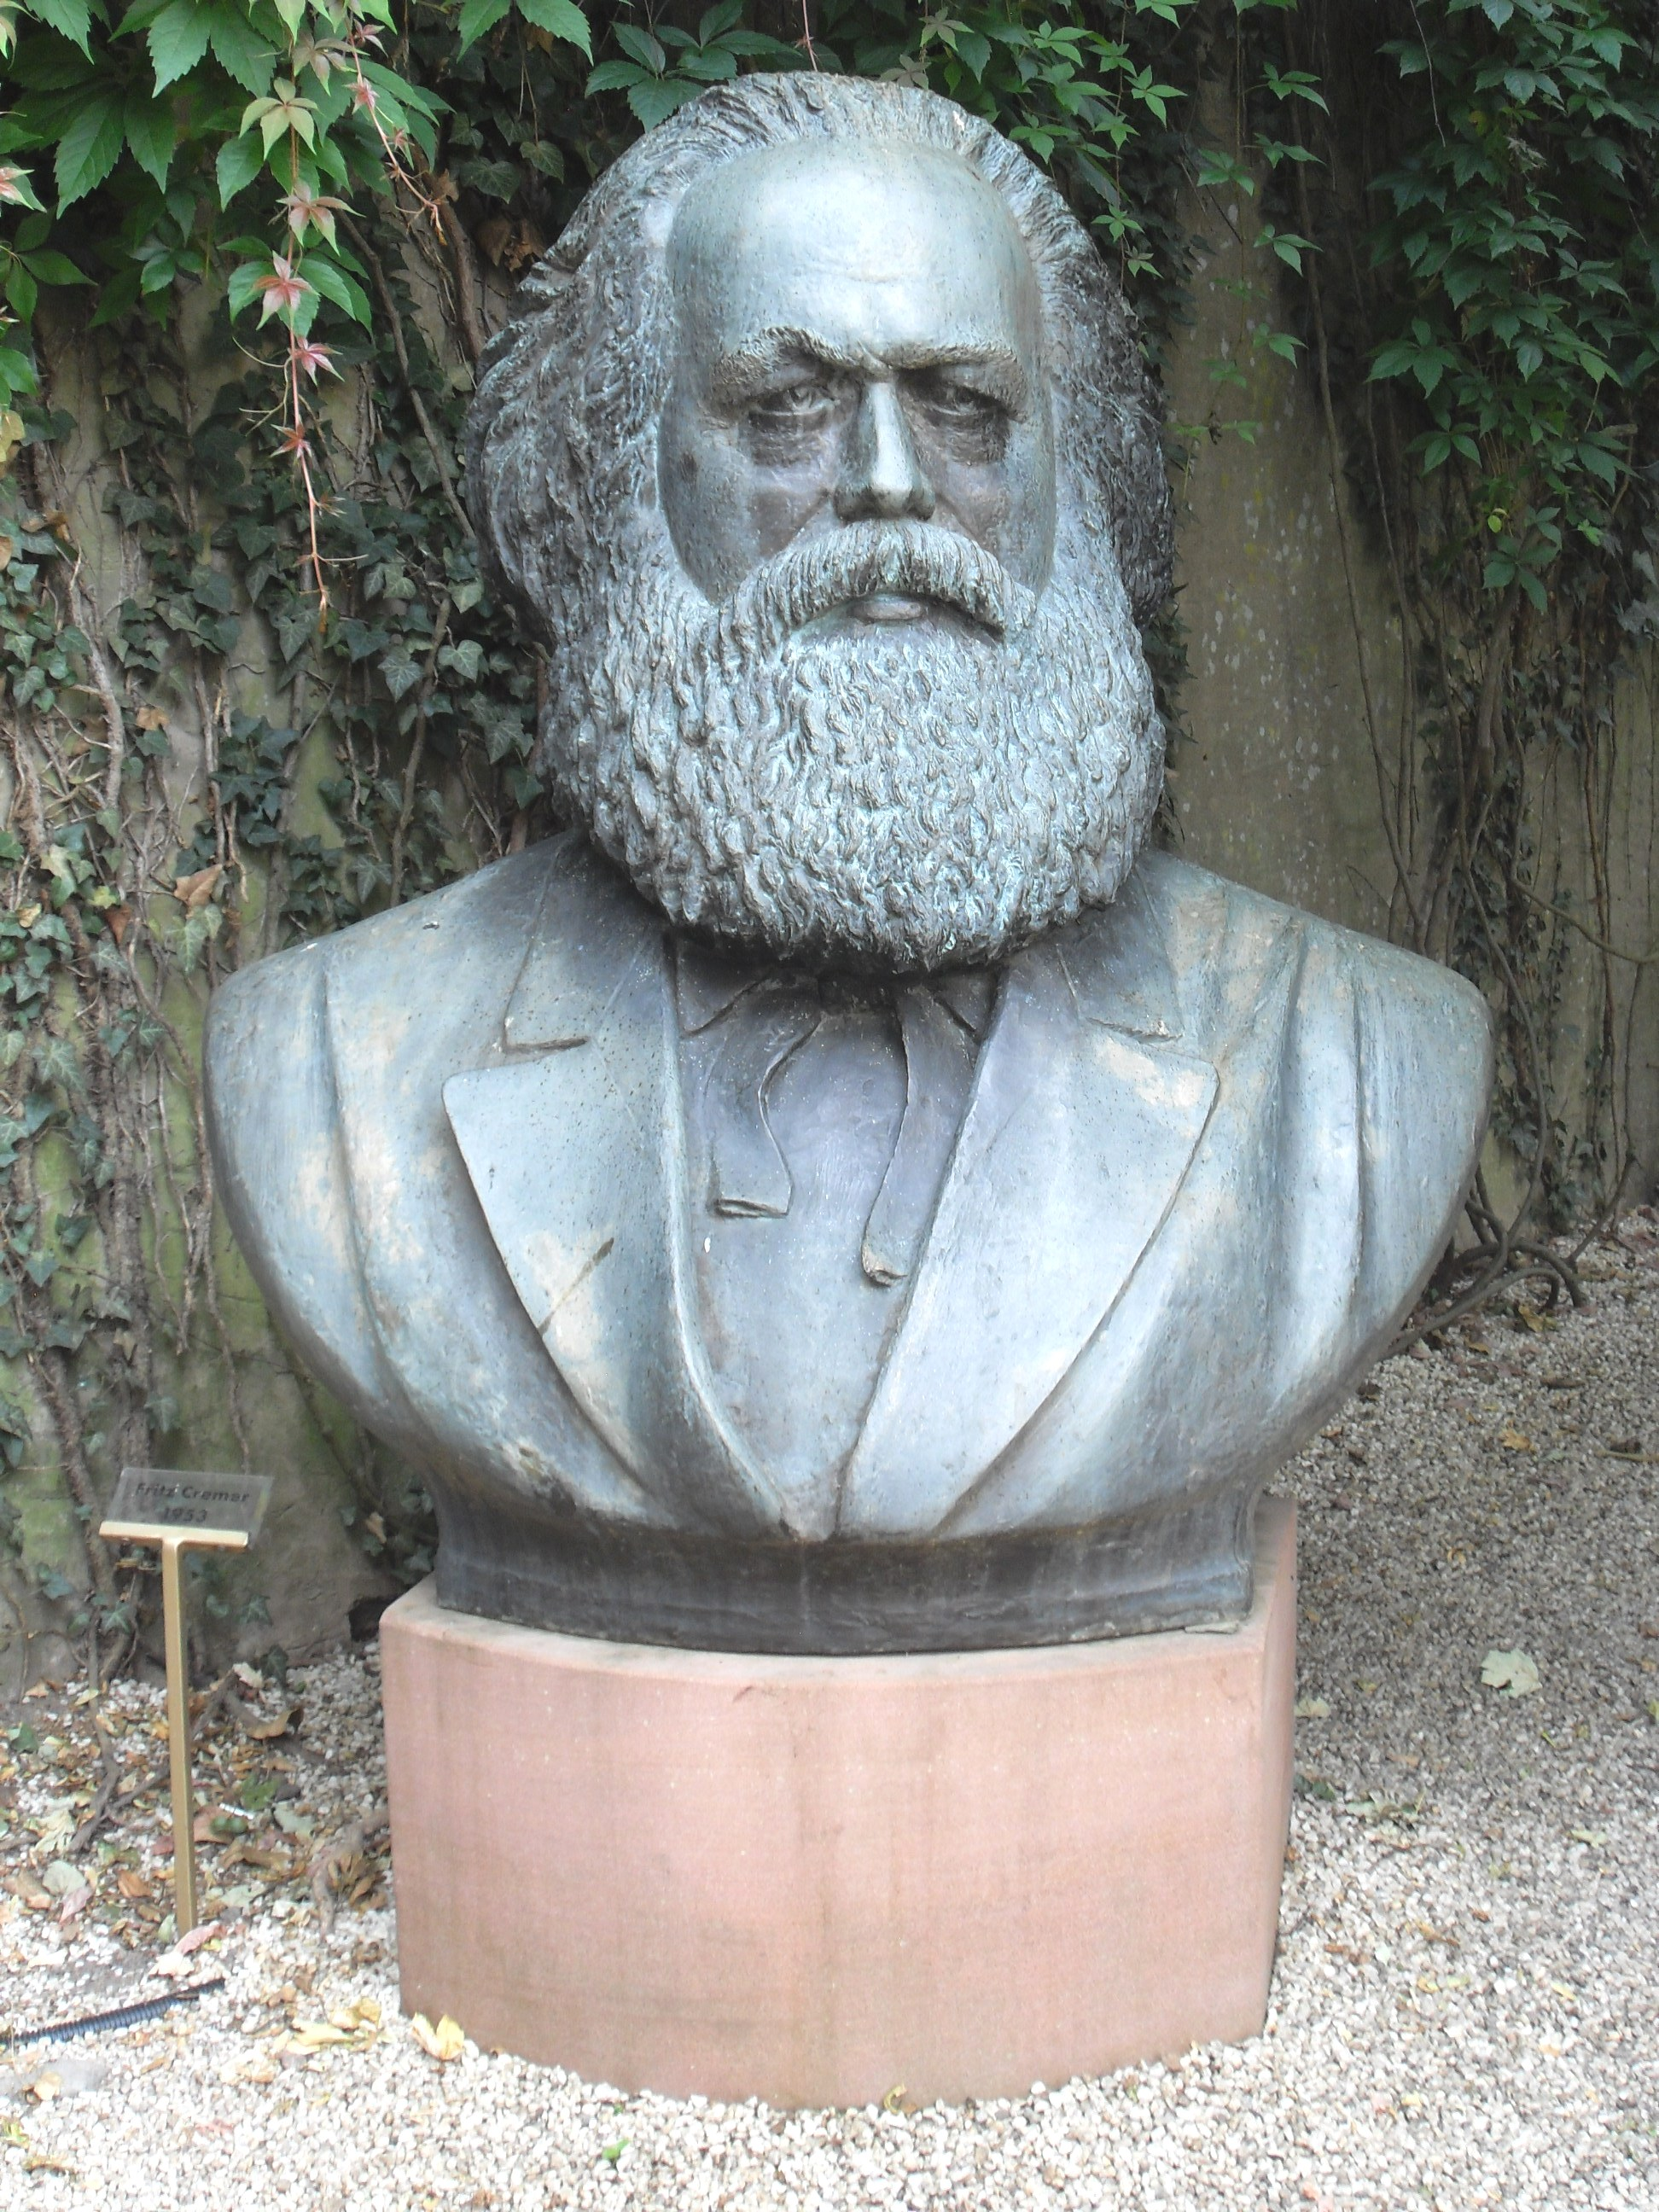 a description of karl marx born in a place called trier in prussia Karl heinrich marx was born on may 5, 1818 in trier, prussia his father, heinrich marx, was a successful lawyer and advocate of the enlightenment his mother, born henrietta pressburg, was from holland.